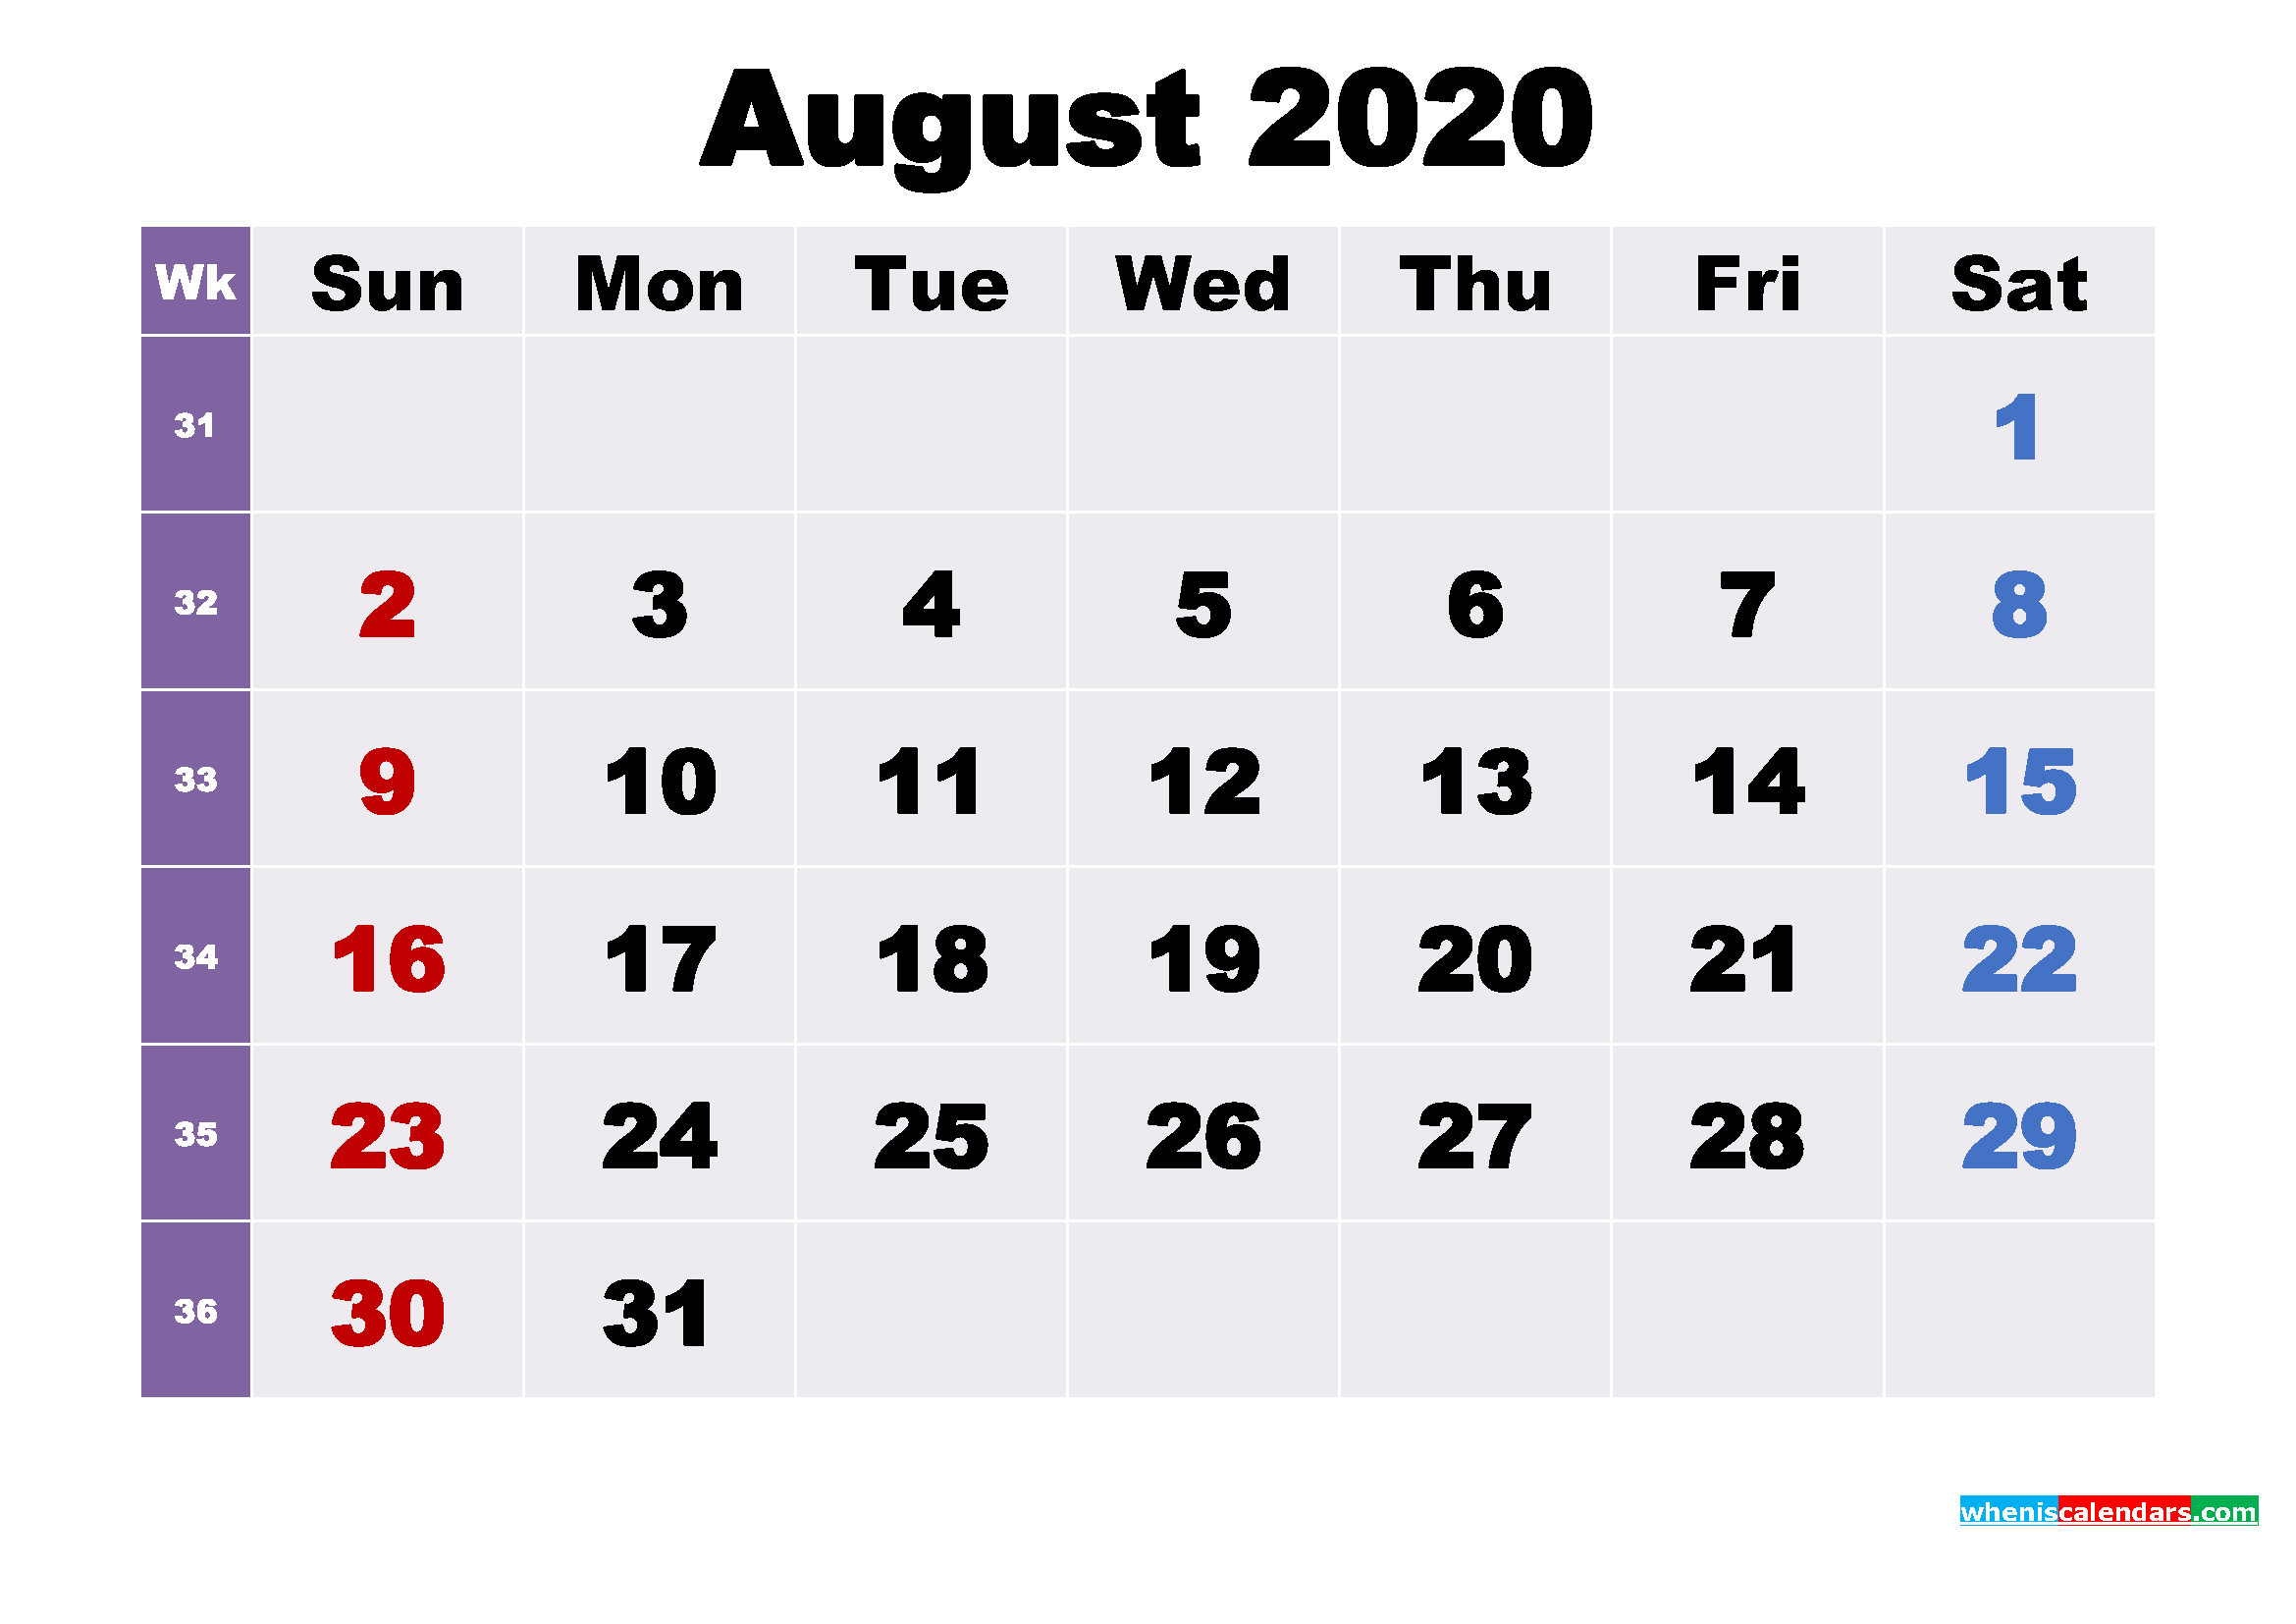 Printable 2020 Calendar by Month August